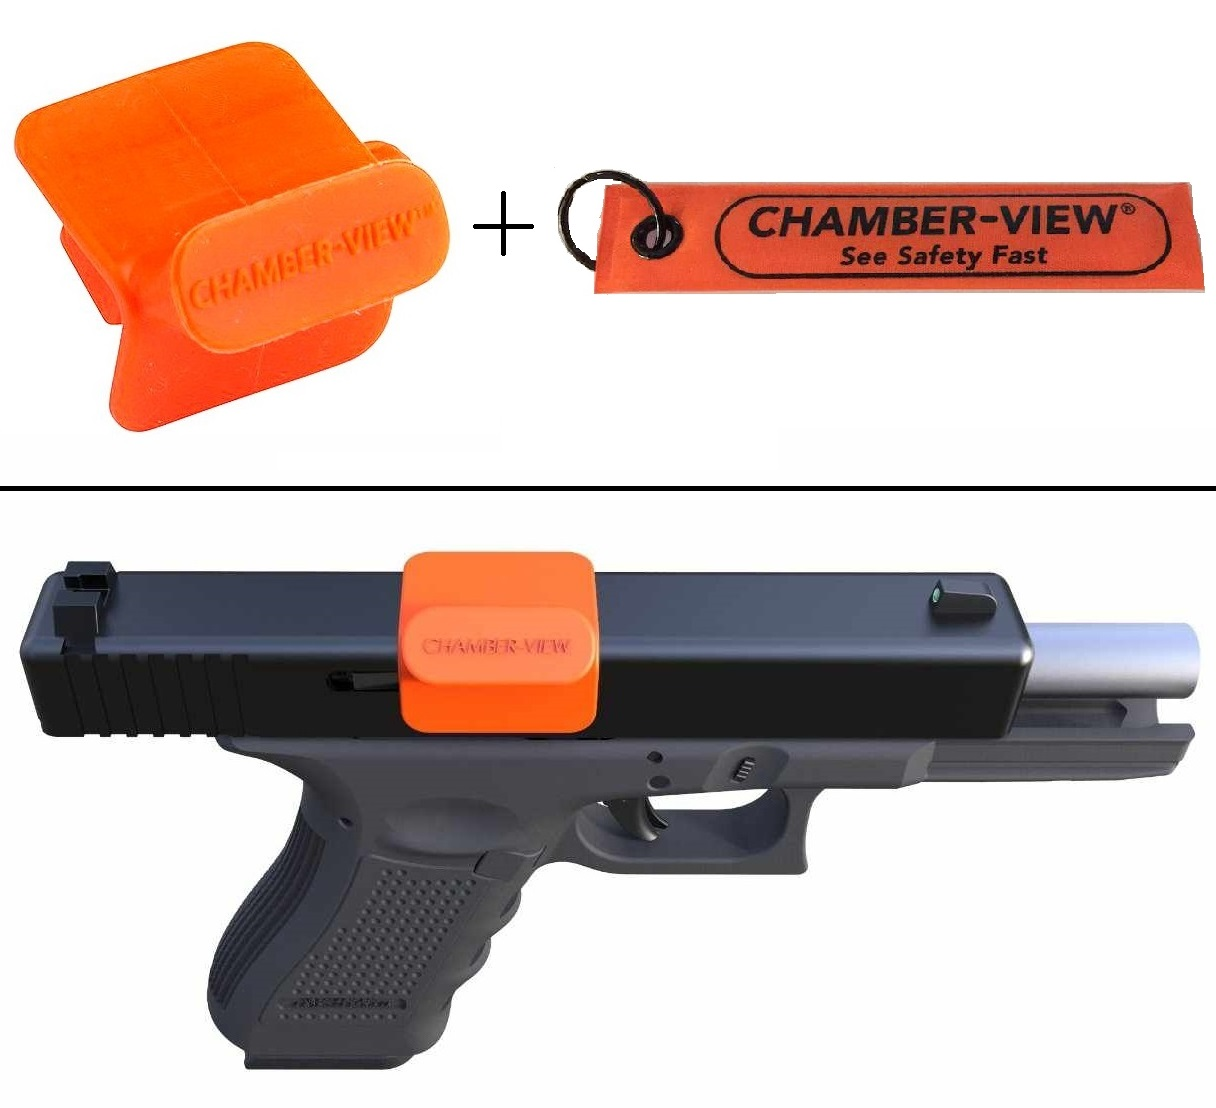 Ultimate Arms Gear Smith & Wesson S&W Chamber-View 9mm .40 Cal Pistol Hand Gun Empty Chamber Safety Flag Dummy Ammunition Ammo Shell Round + Fast Pull-Tag Identification